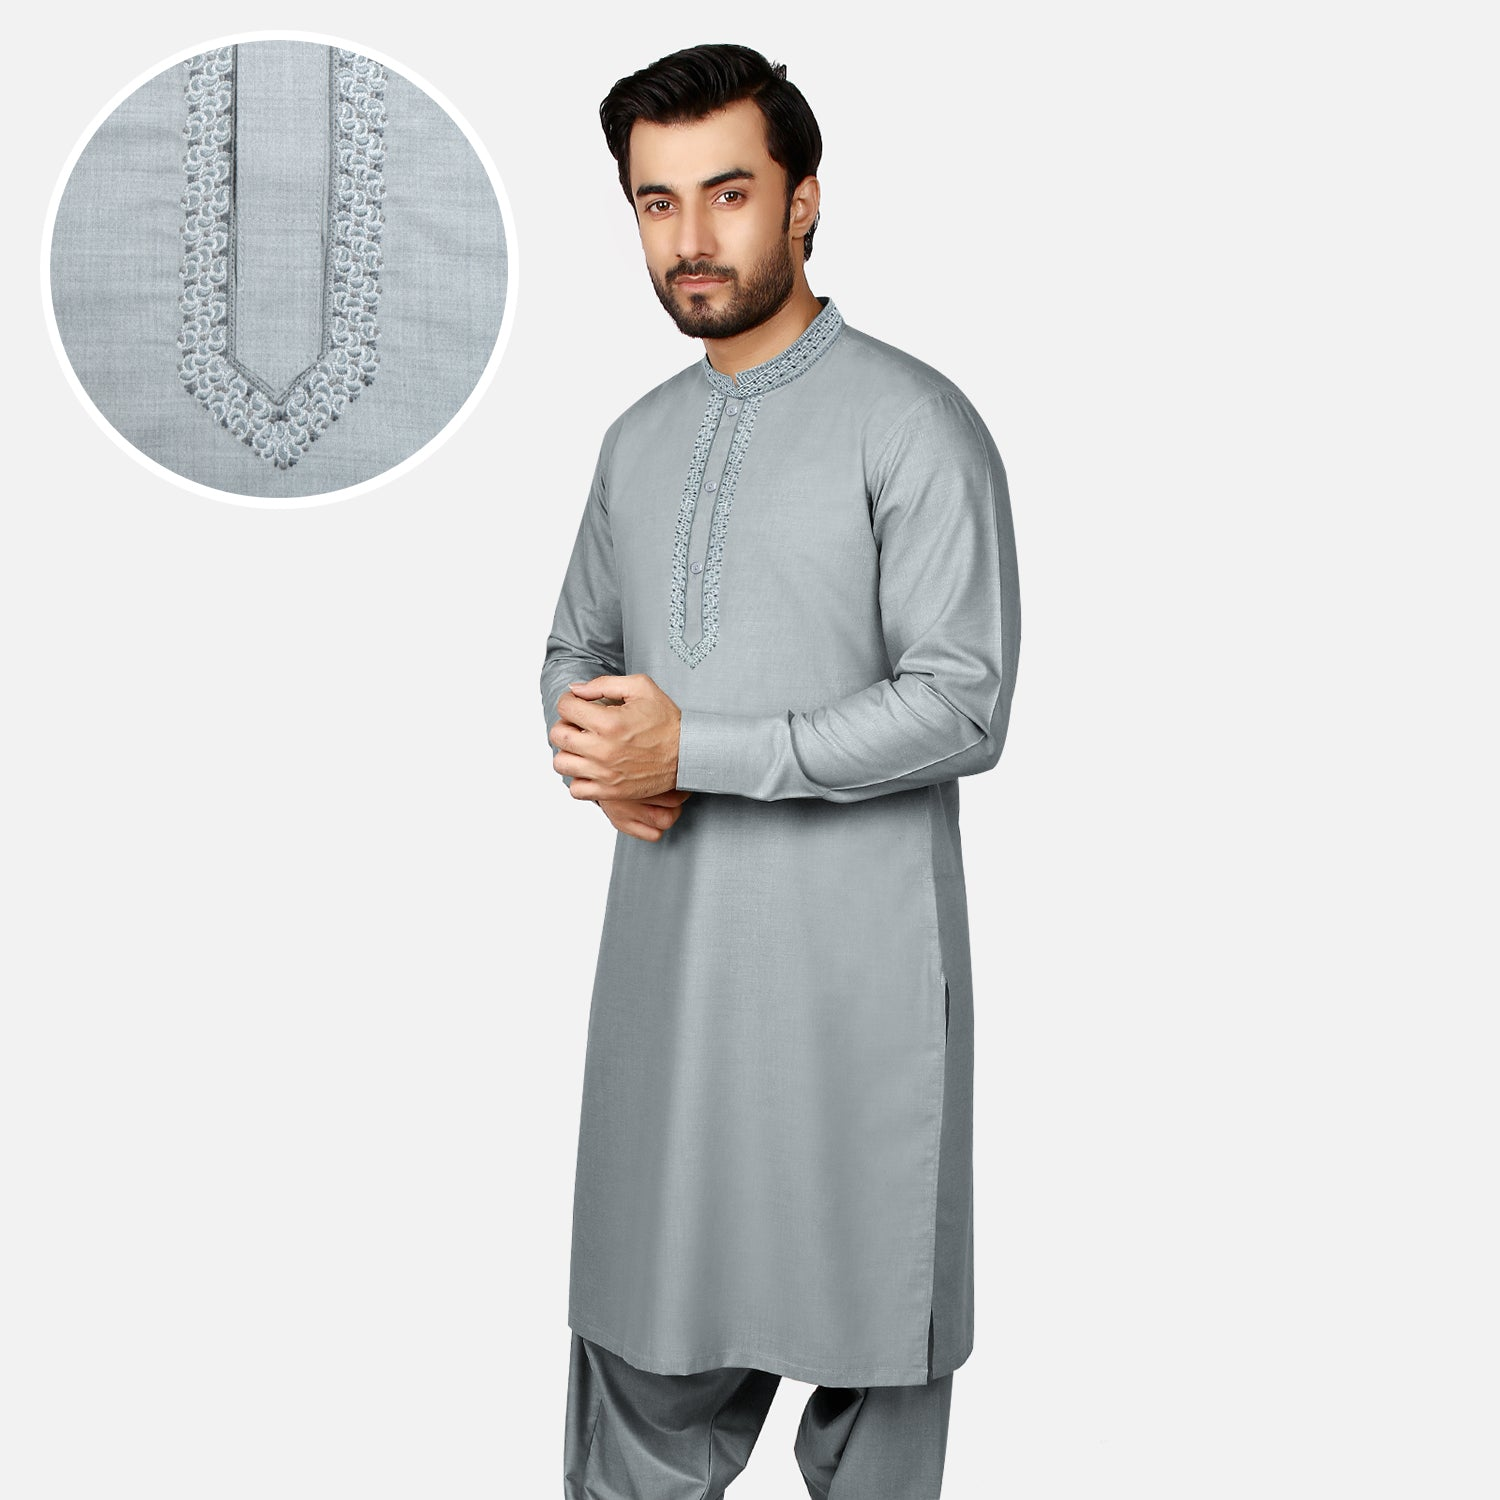 J. Premium Quality Washing Wear Shalwar Kameez Suit For Men-Slate Blue-BE10059